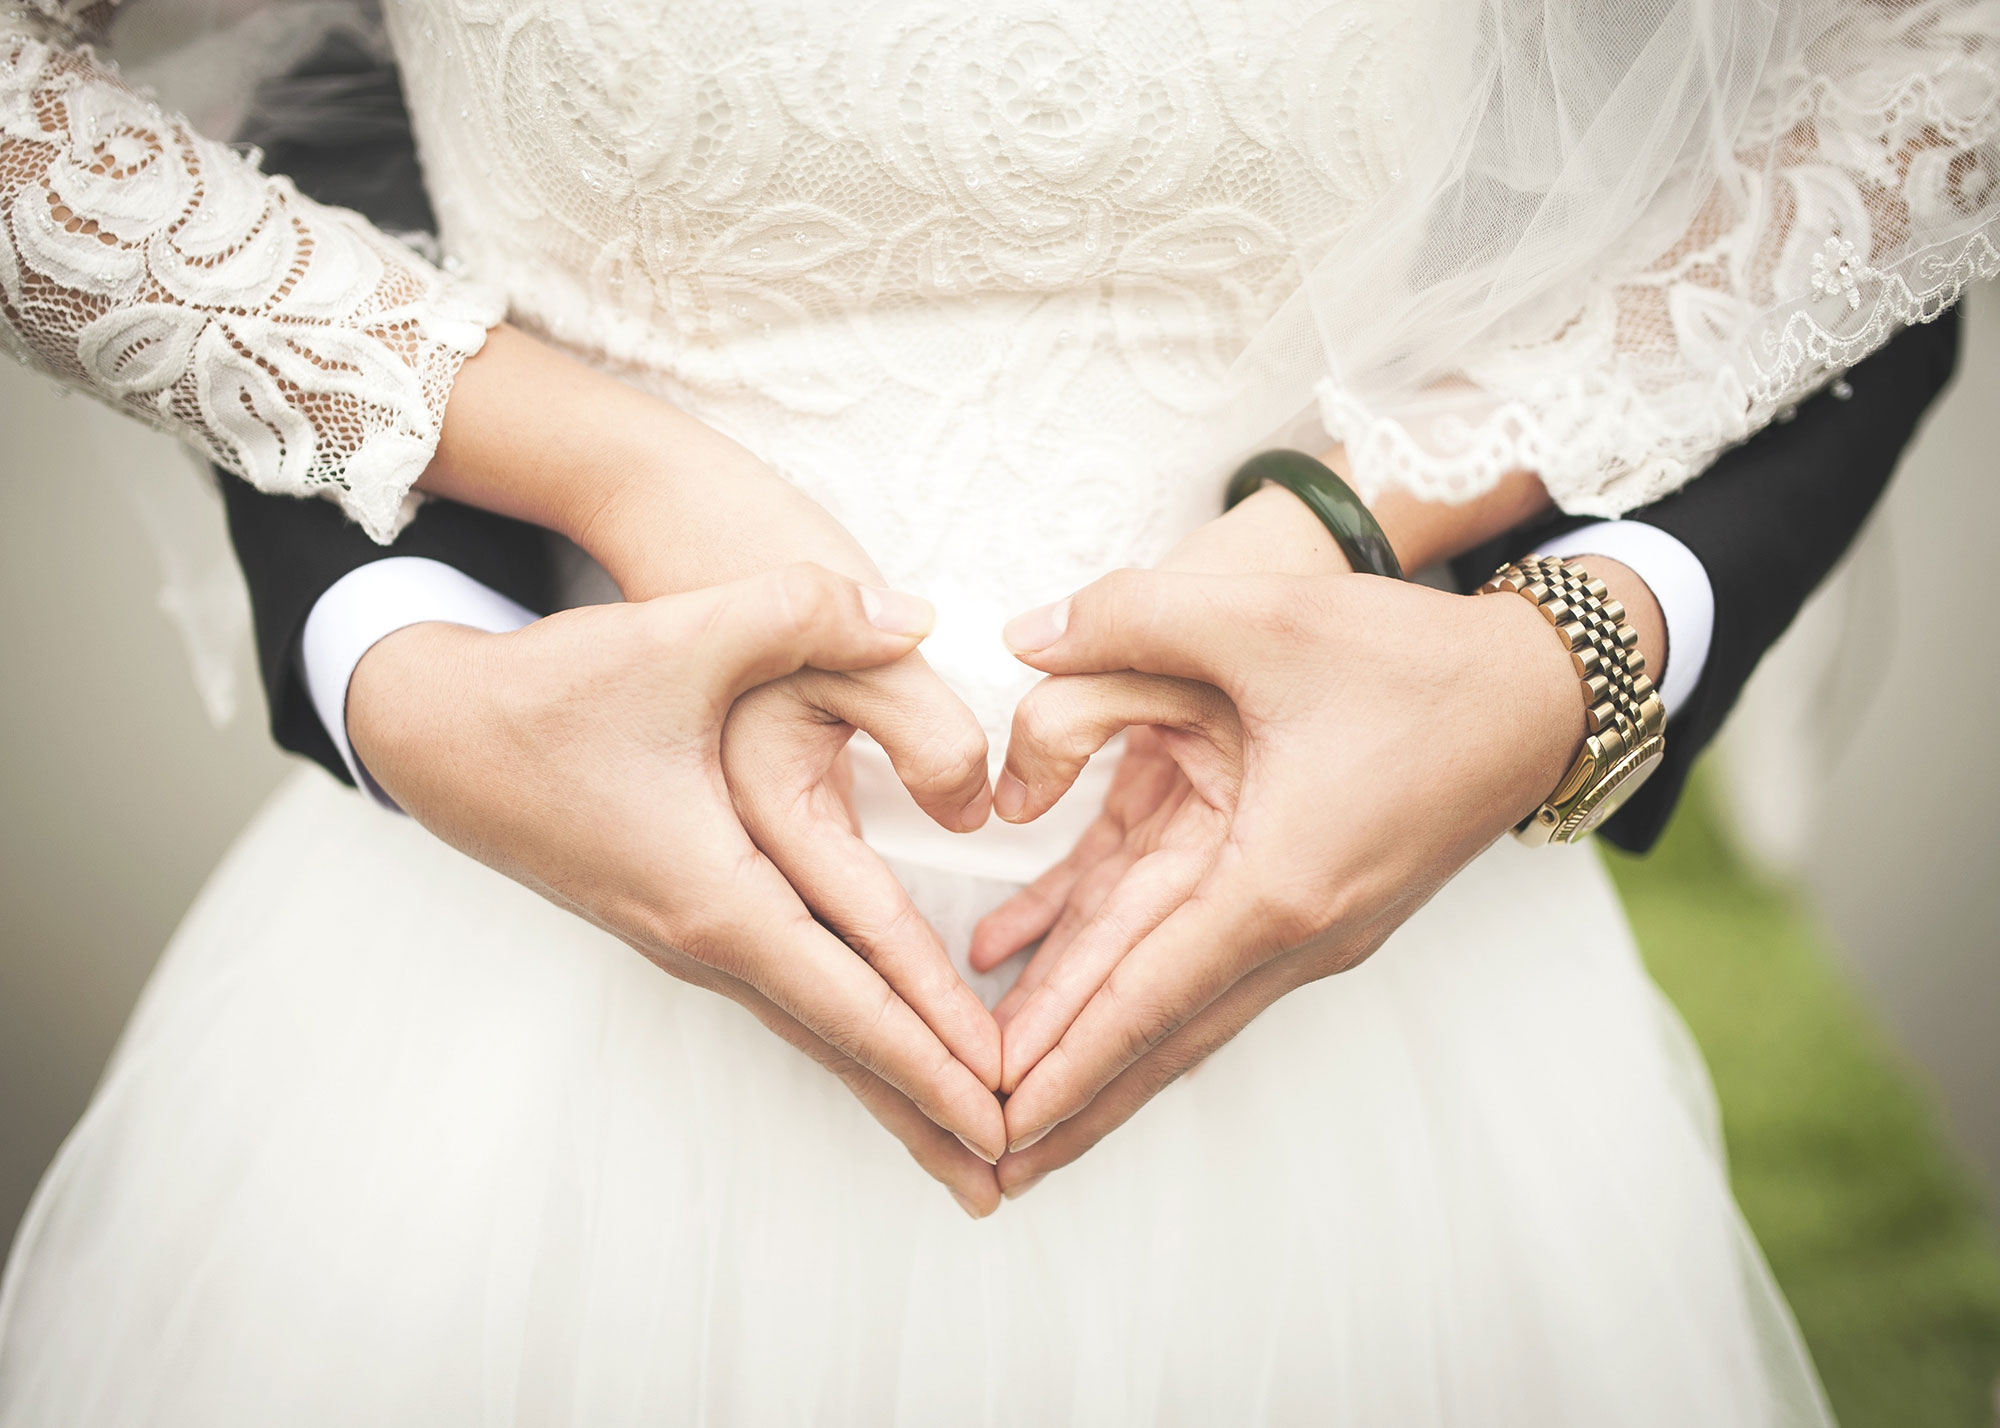 Couple forming a heart with their hands